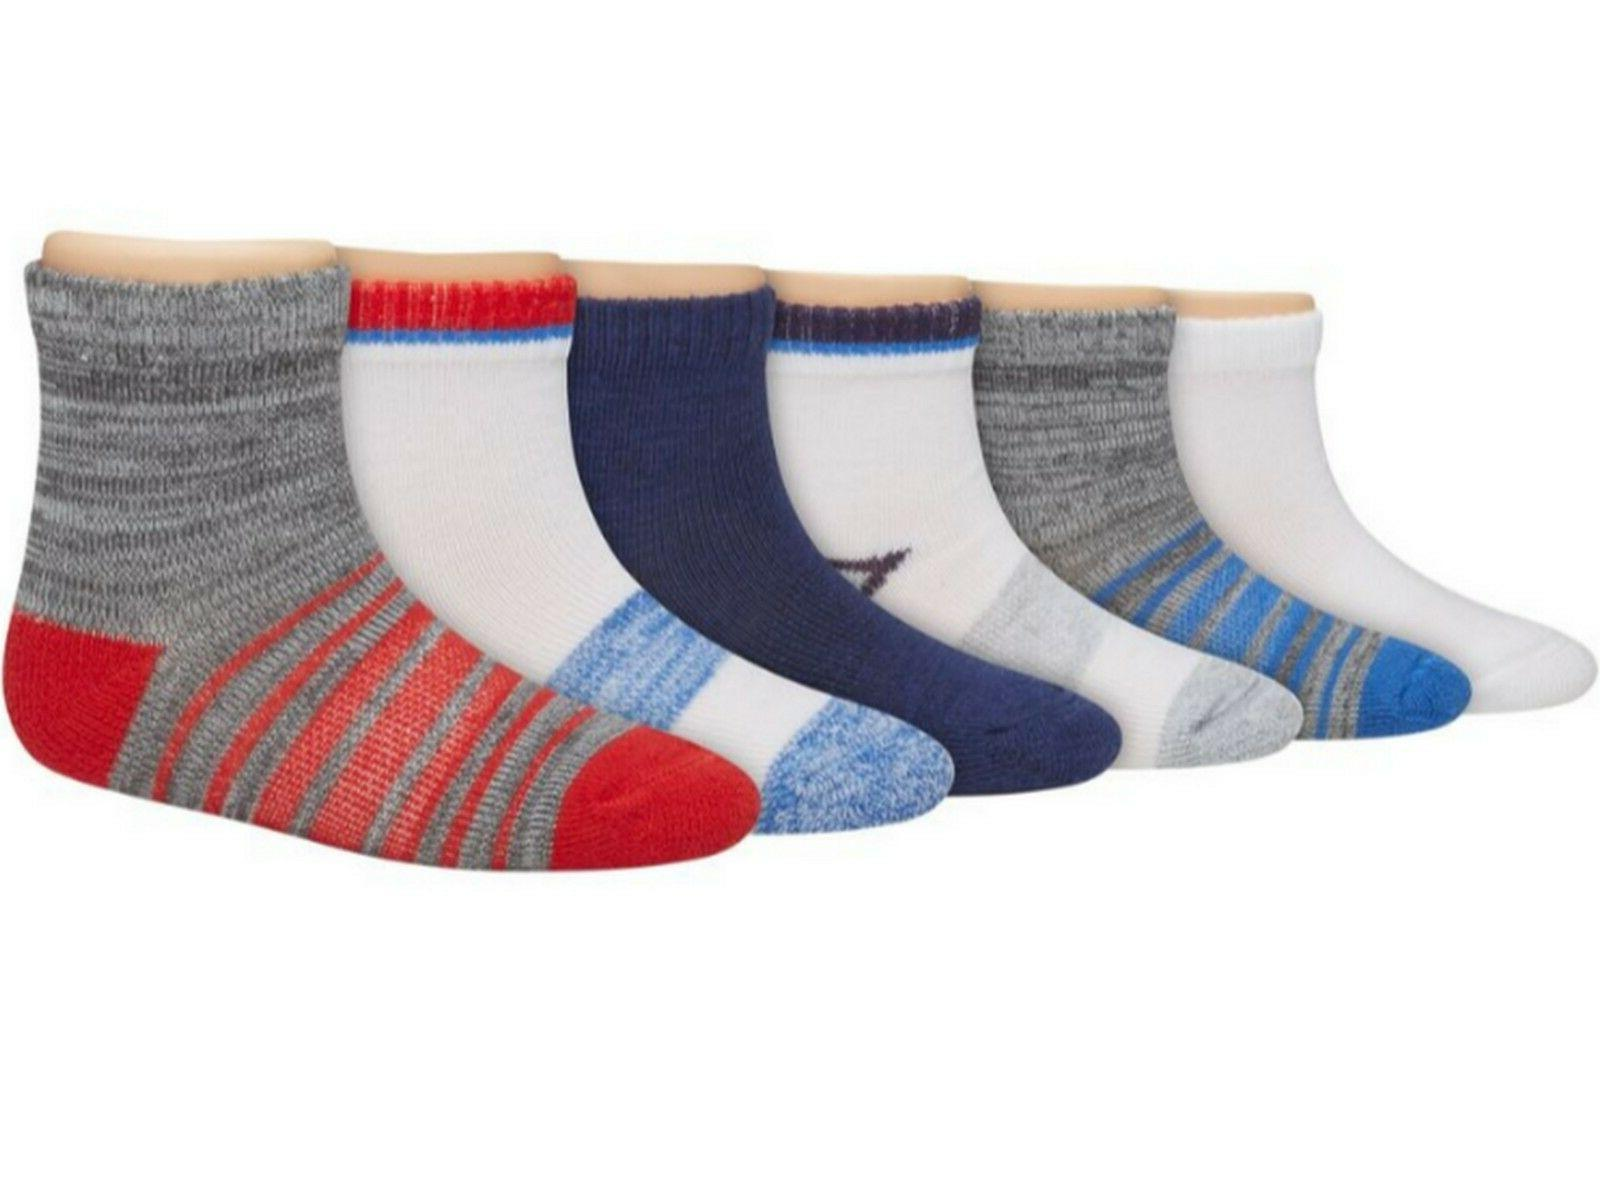 Hanes Boys Toddler Ankle Socks 6-Pack TB27W6